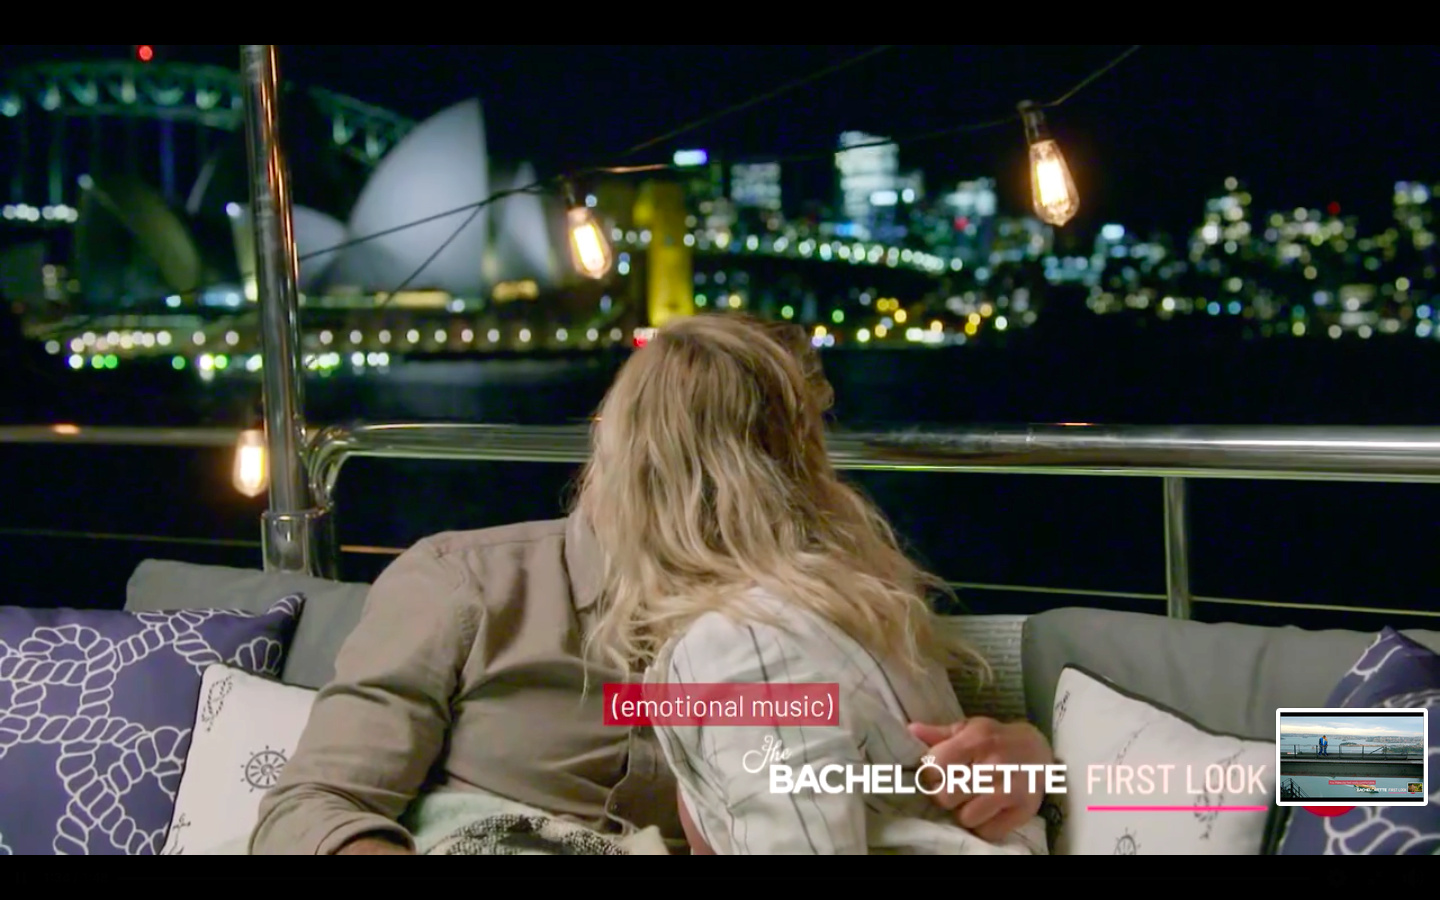 Bachelorette Australia - Season 6 - Elly and Becky Miles - Screencaps - Discussion - *Sleuthing Spoilers*  - Page 5 Screen90